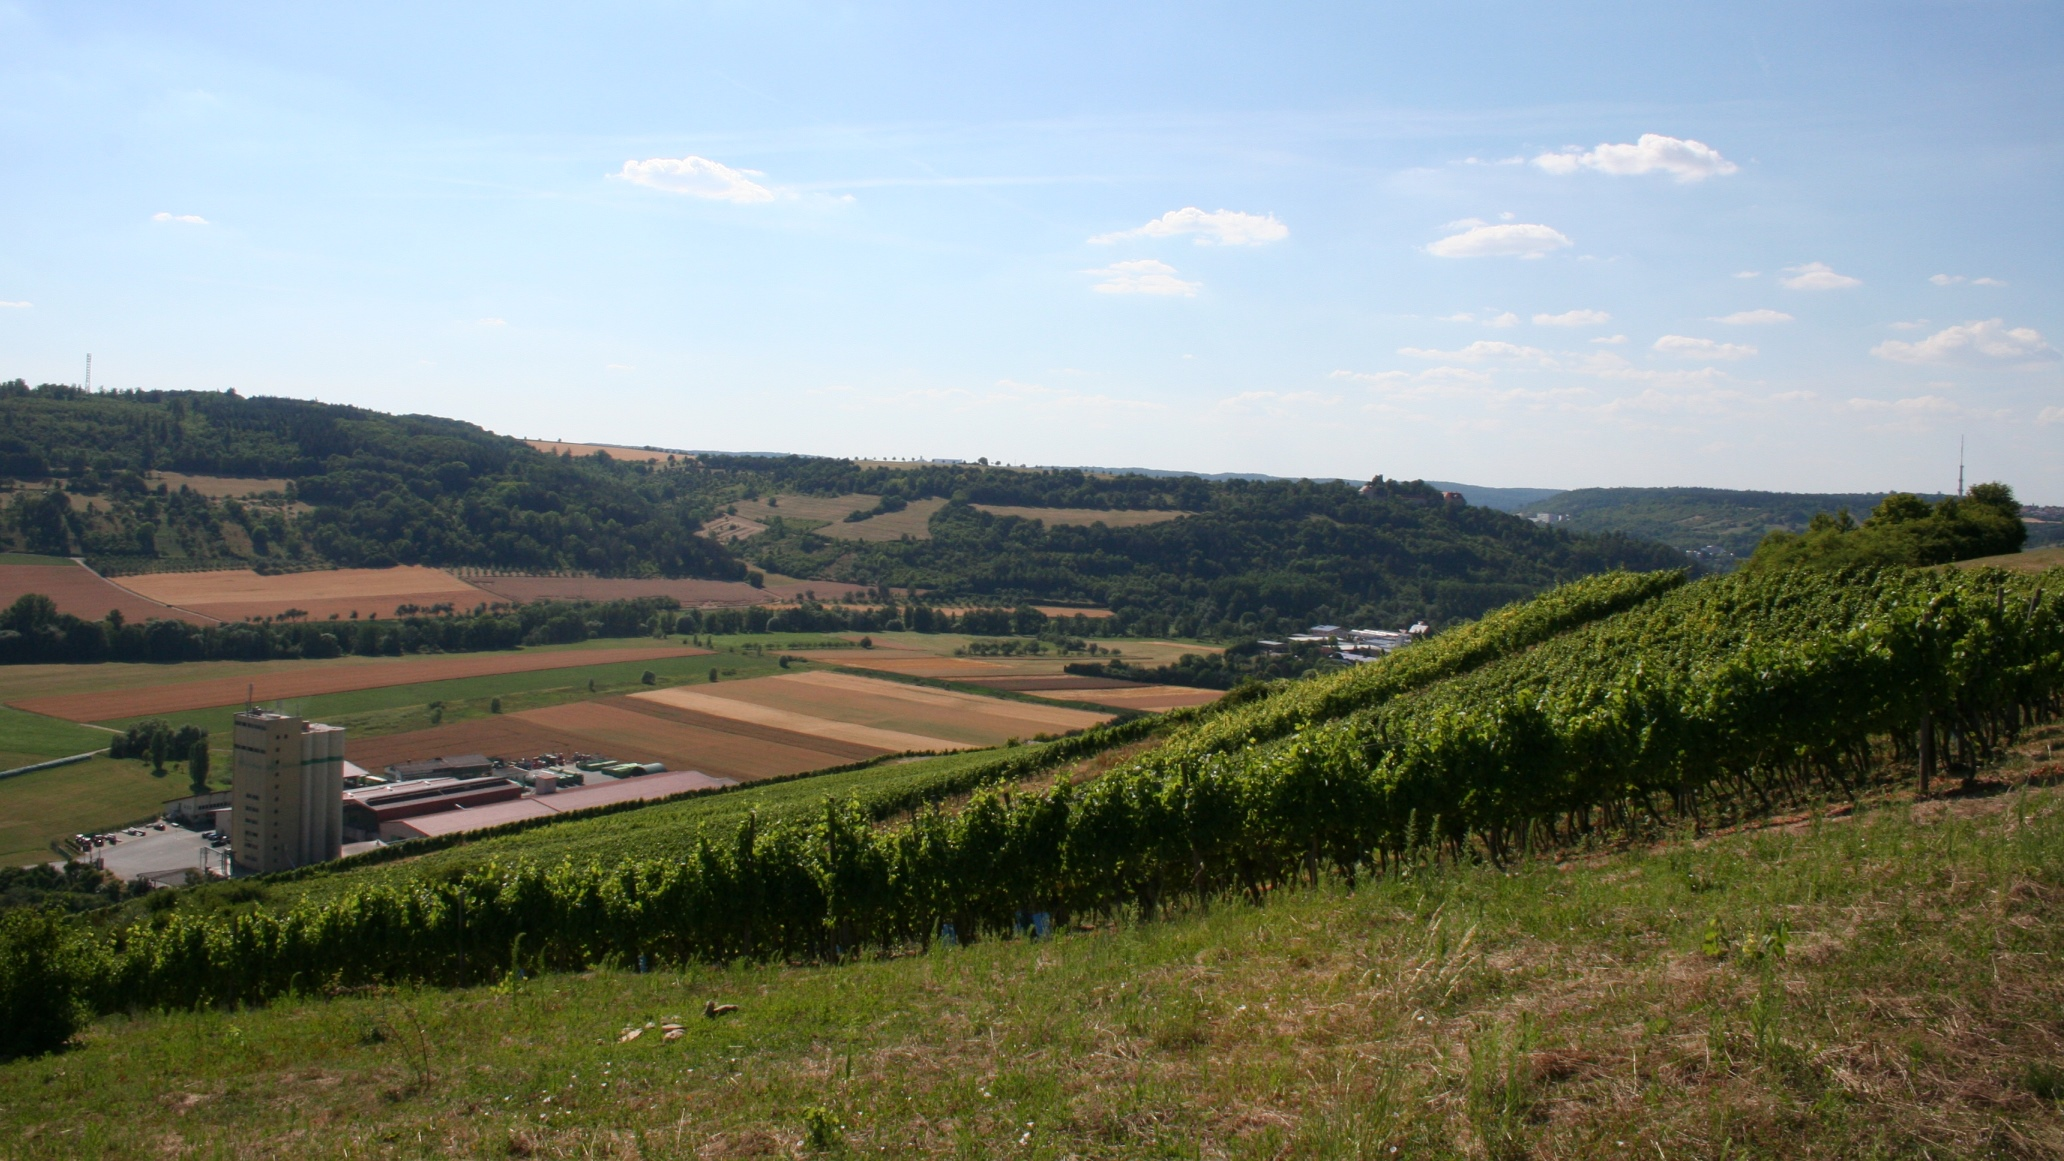 Markelsheim is surrounded by brachtvollen vineyards.